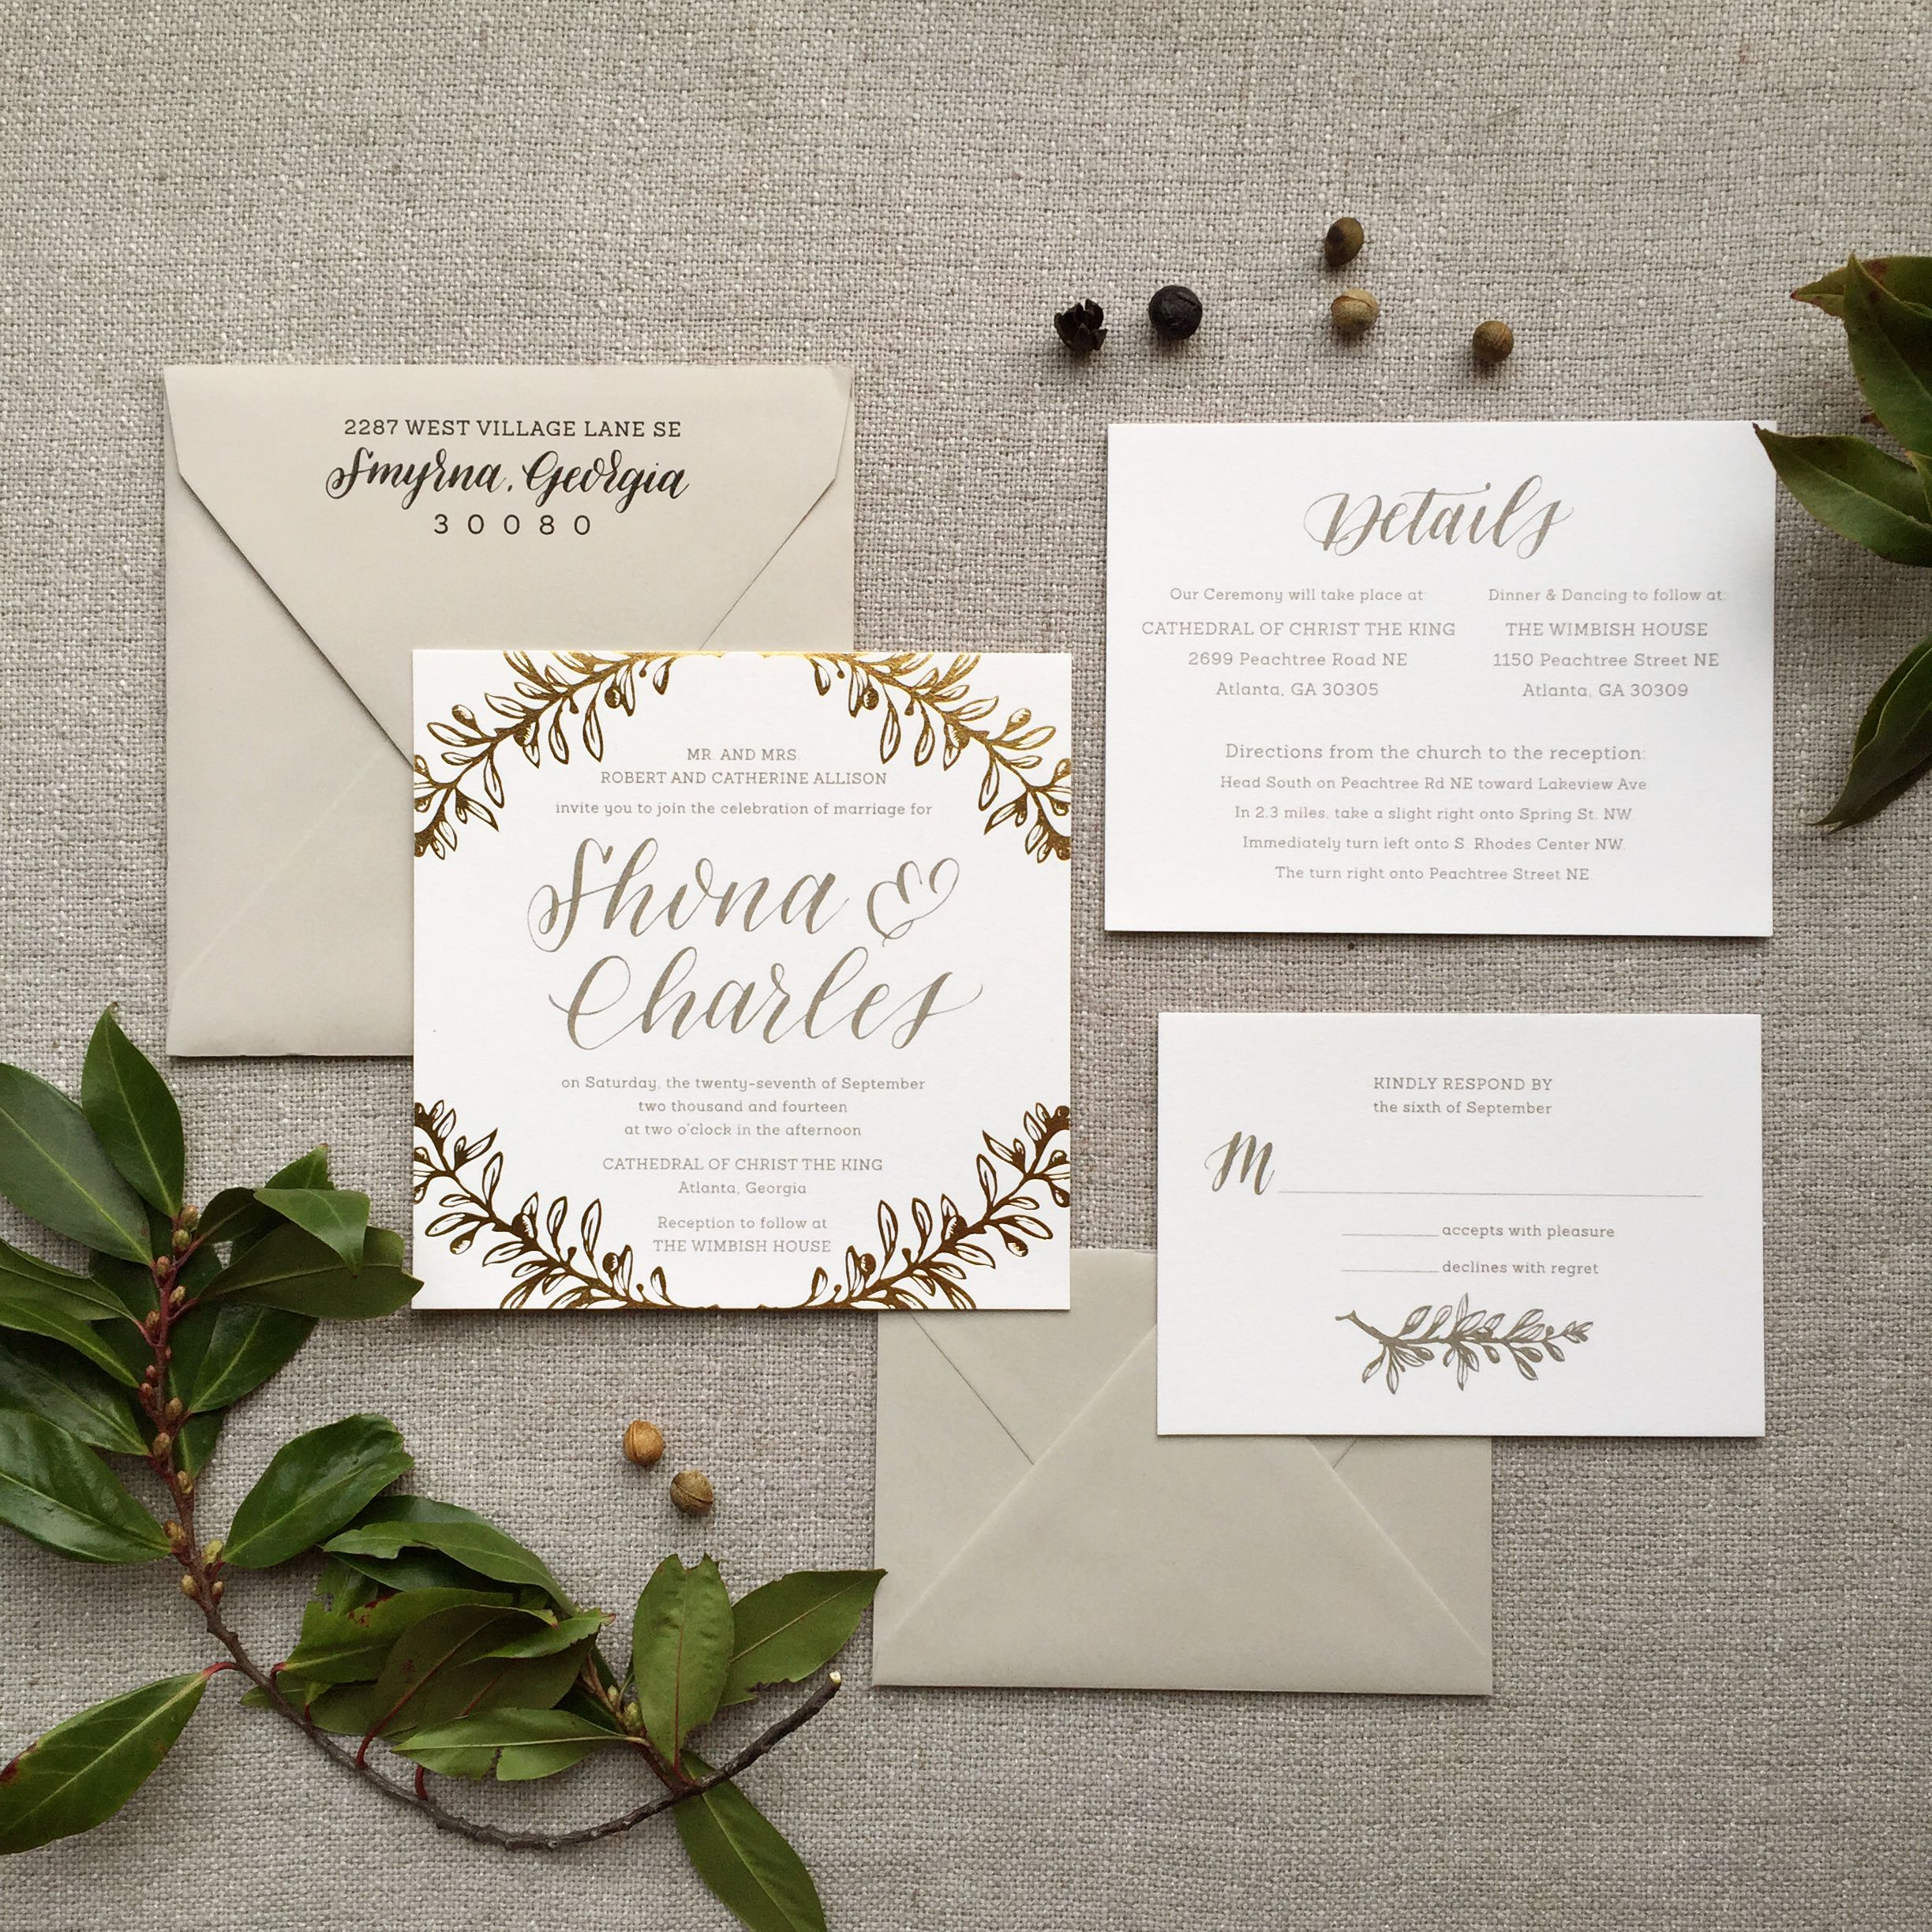 Ashley Buzzy Oliver Wedding Invitation Suite This Design Wraps A